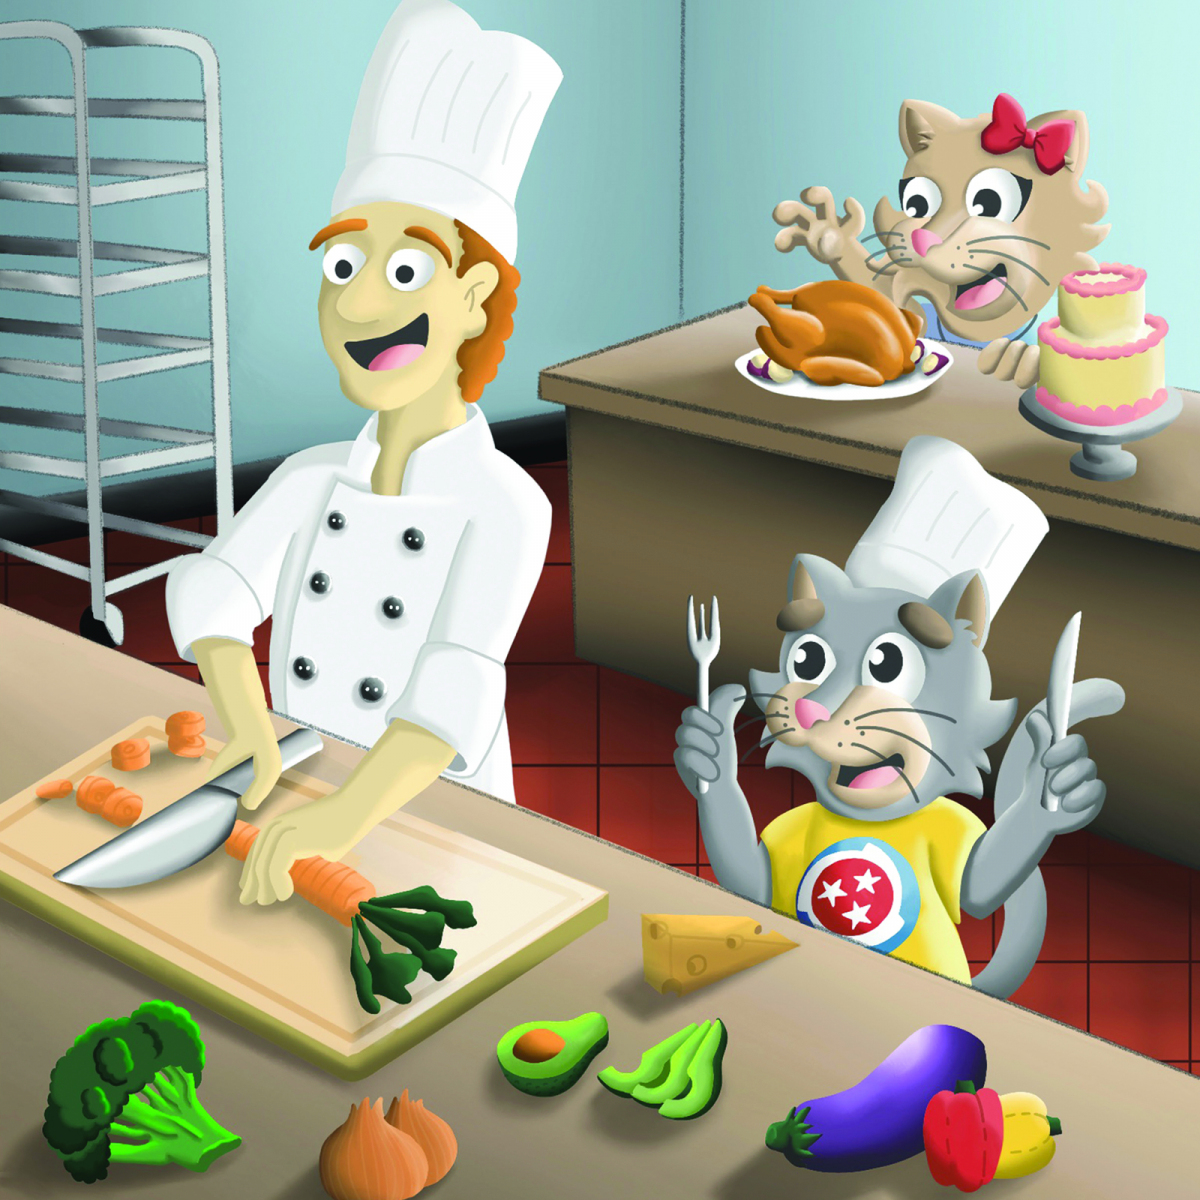 Tcat_Childrens_Book-cooking-CMYK